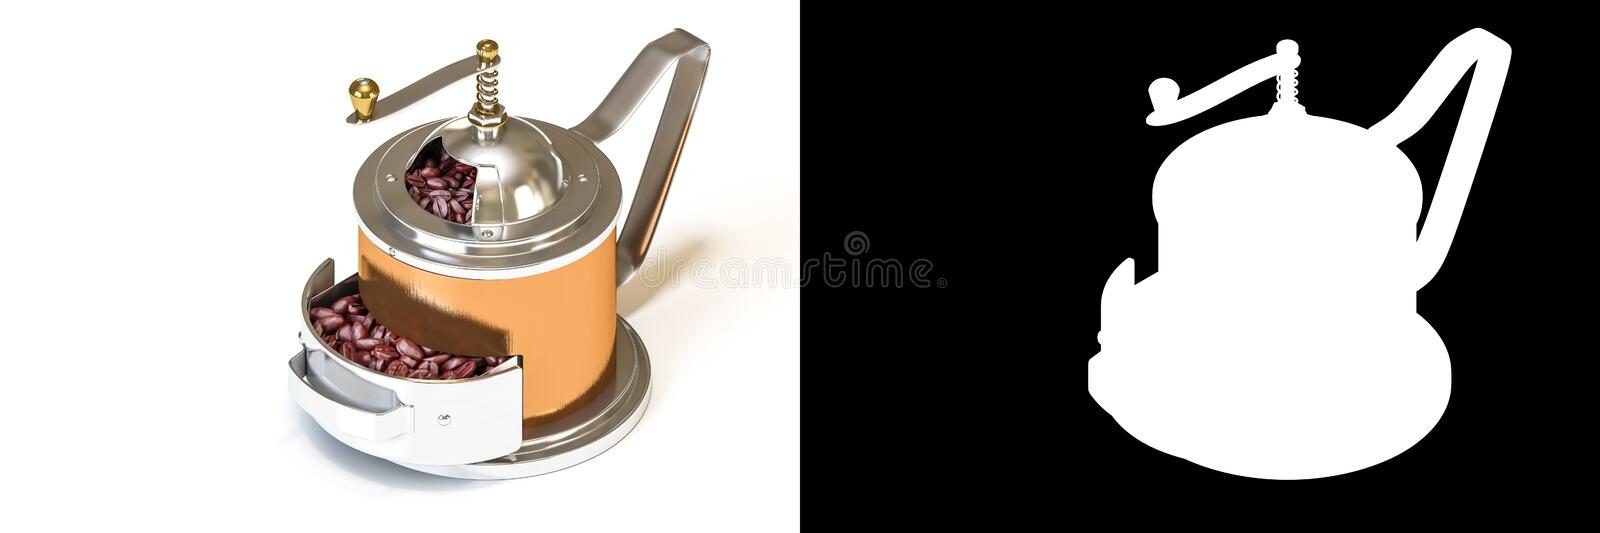 3D isometric rendering of brass vintage coffee grinder with coffee beans isolated on white background with alpha channel section royalty free illustration